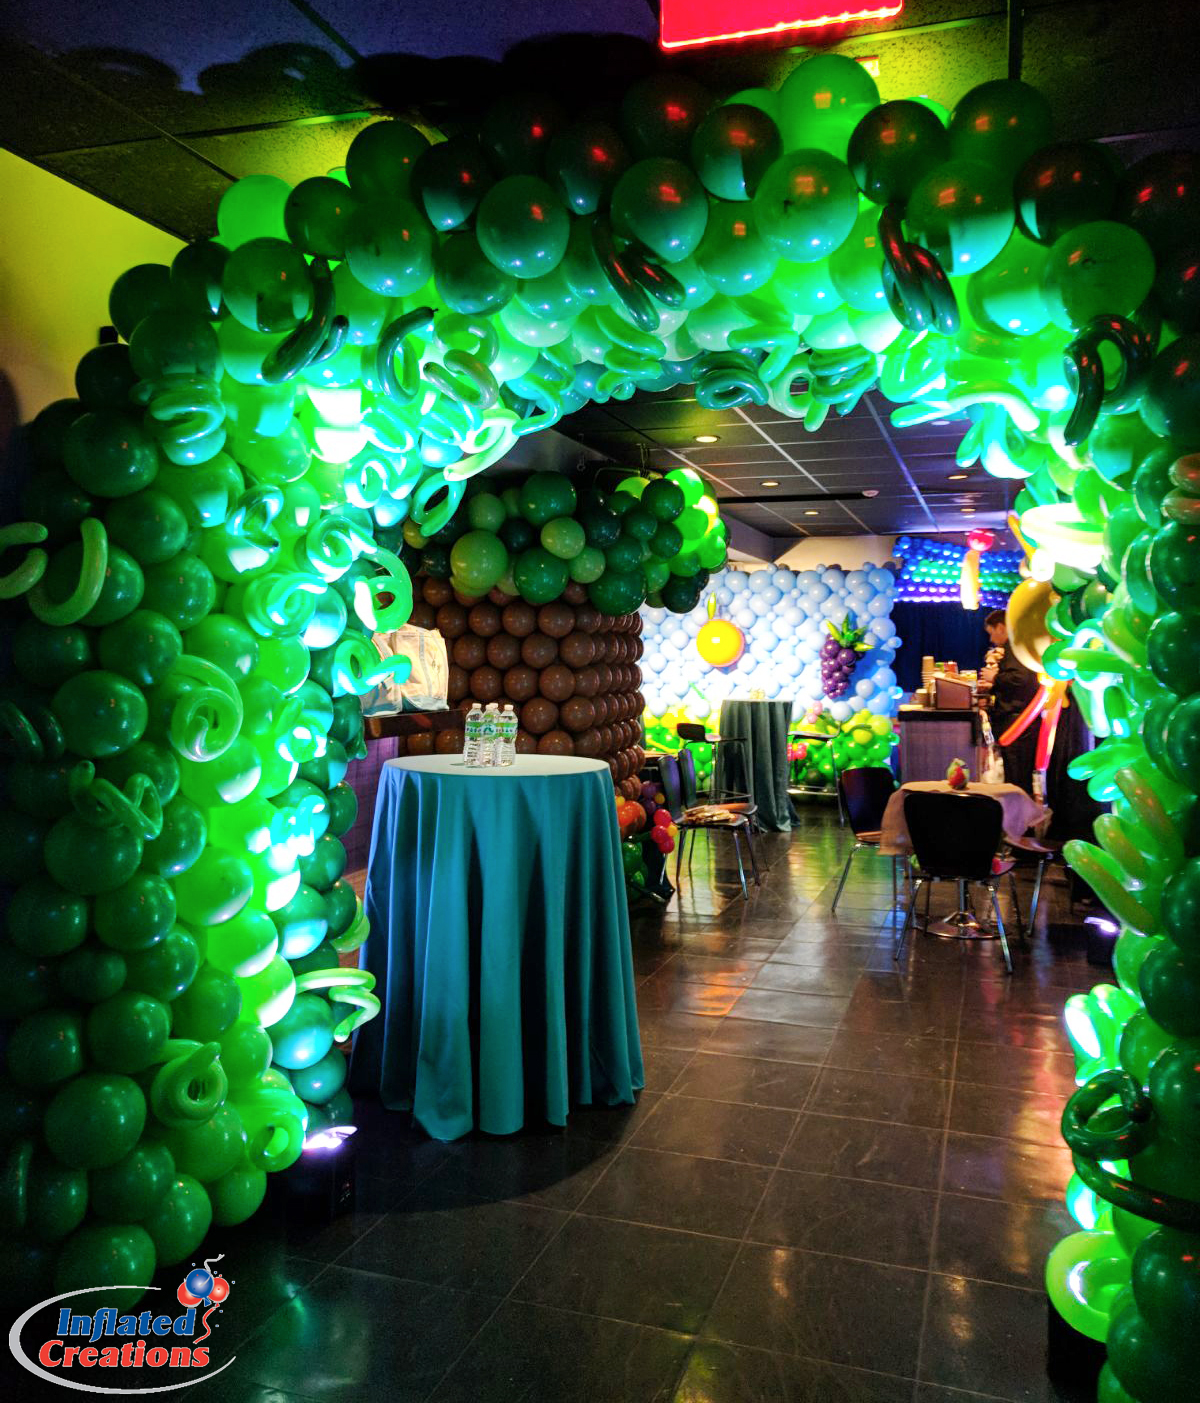 The Very Hungry Caterpillar - Arch